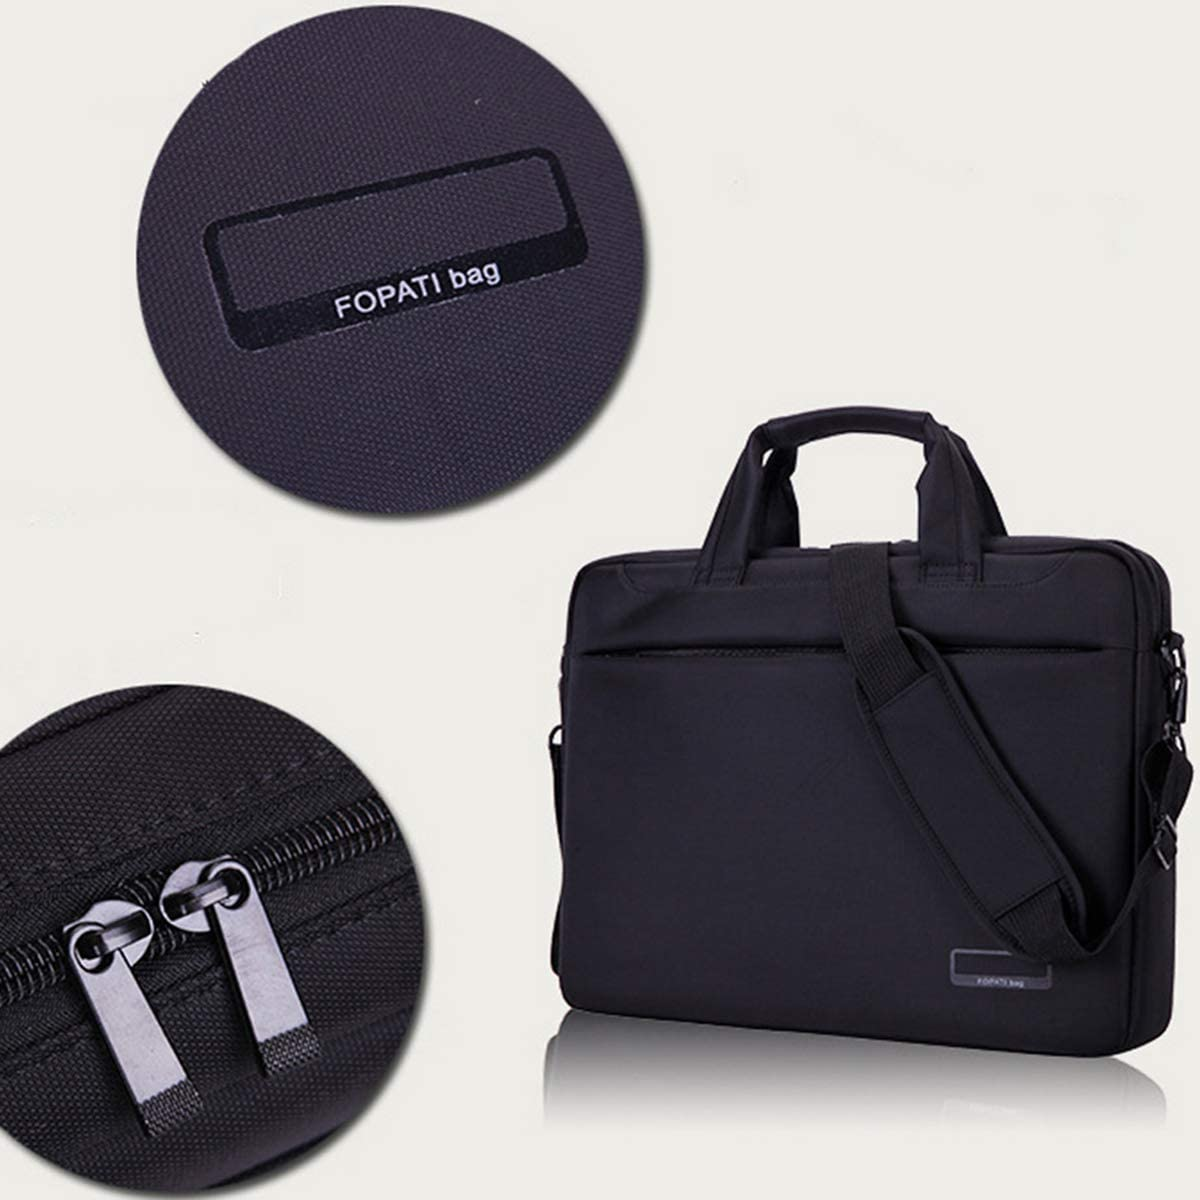 YDSH 12 inch Laptop Case Protective Bag Carrying Case with Strap for Chromebook//MacBook//HP//Acer//Asus Dell//Lenovo Laptop Shoulder Bag Multi-Functional Notebook Sleeve